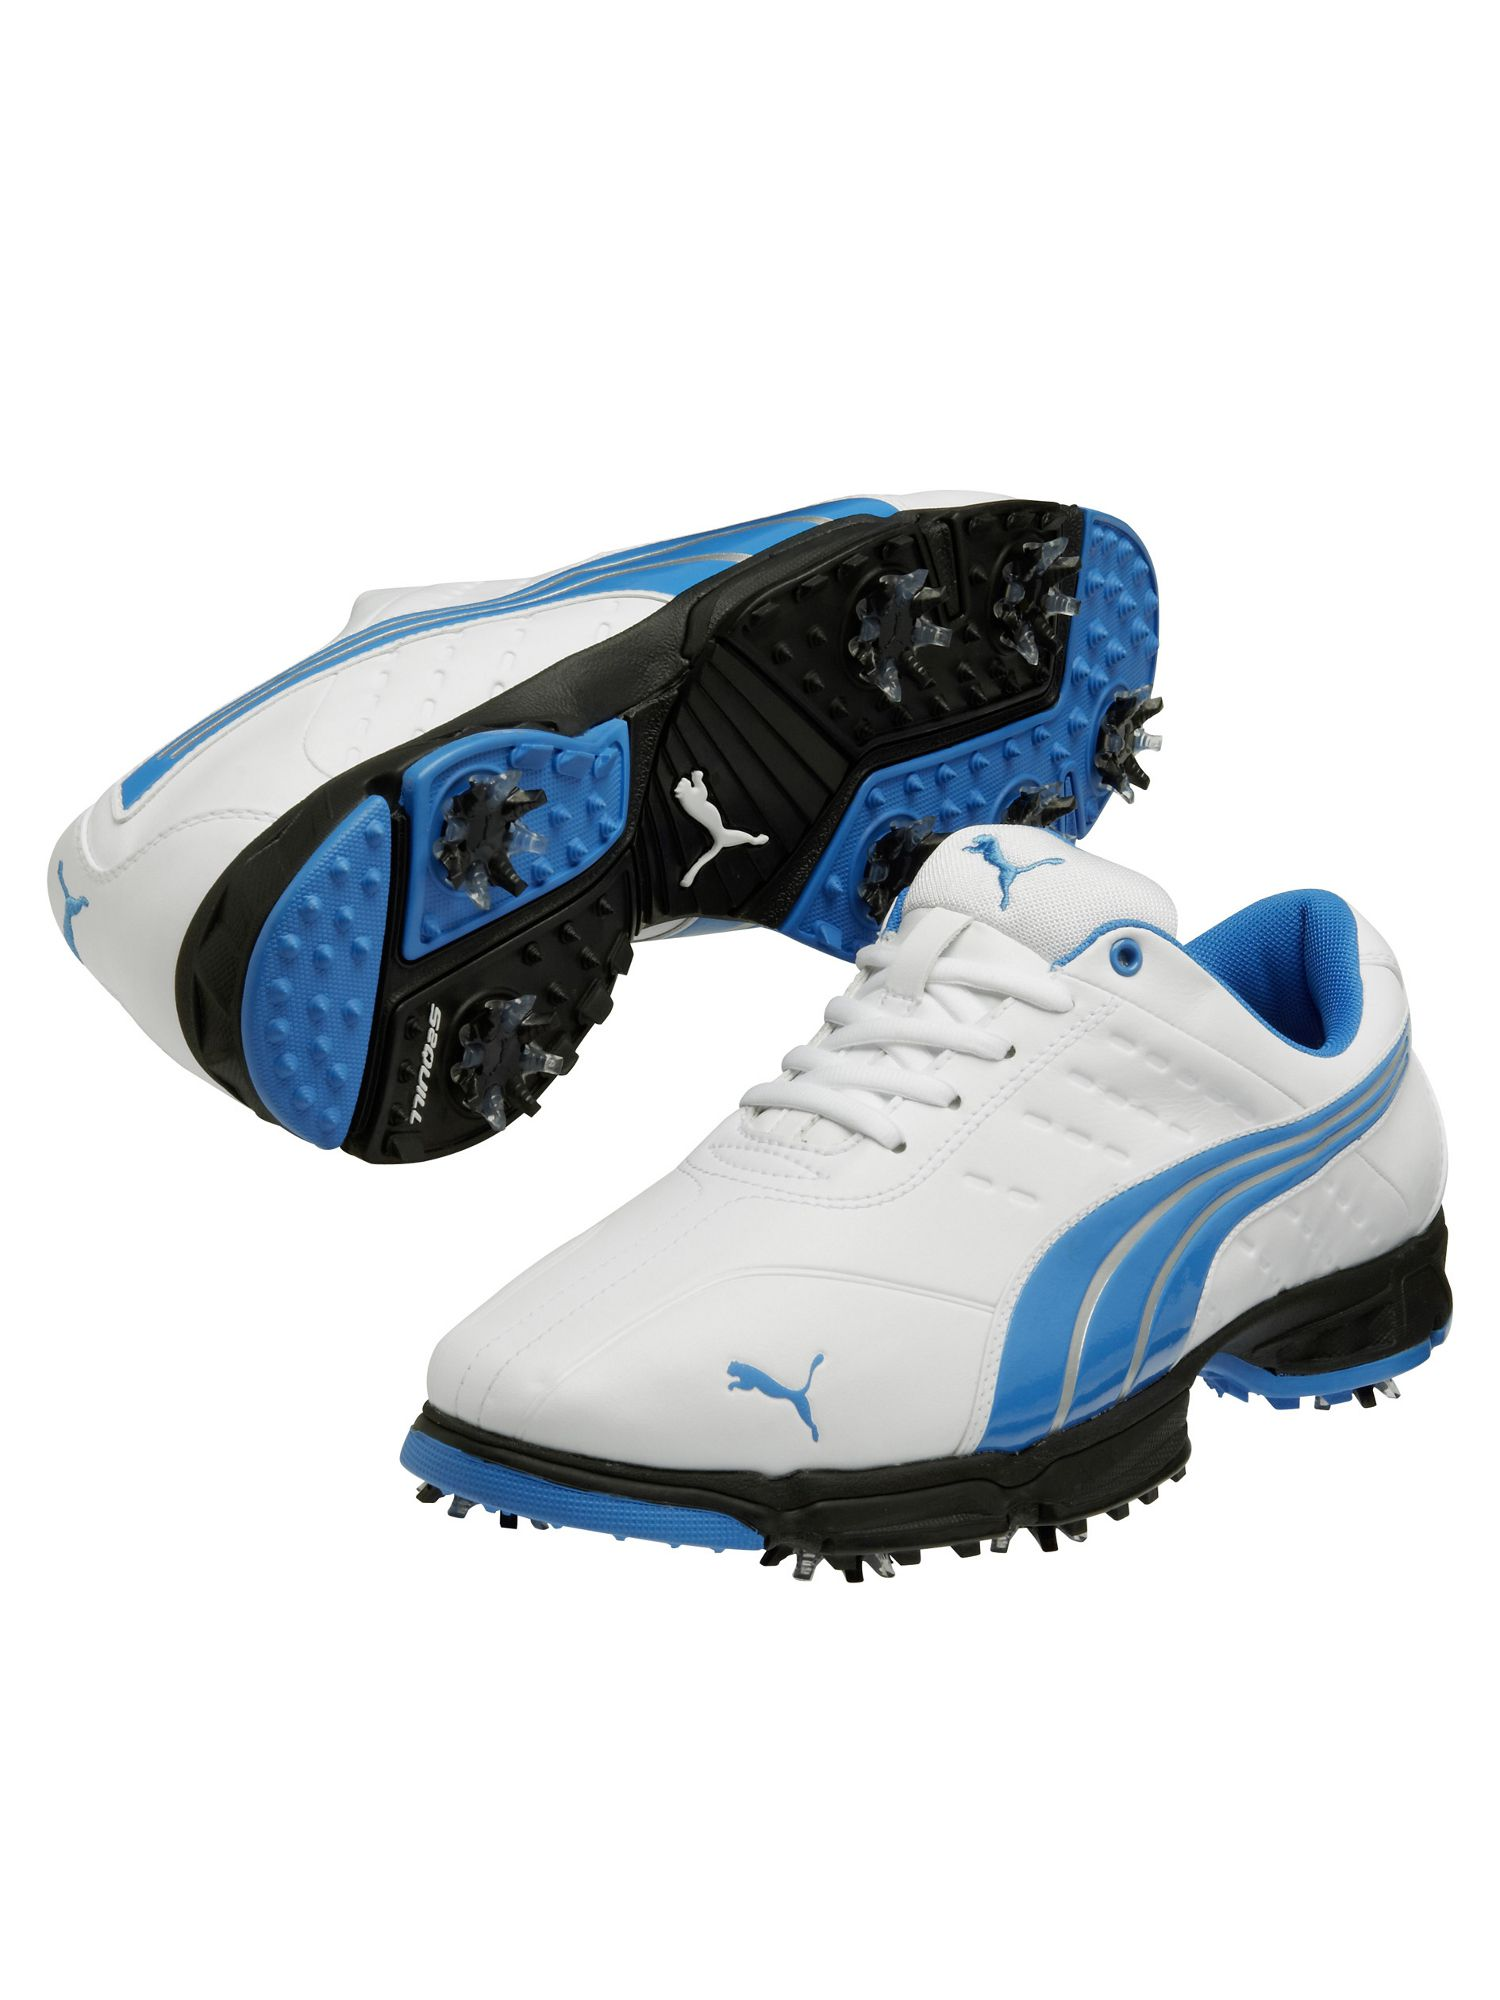 Fusion sport casual golf shoes